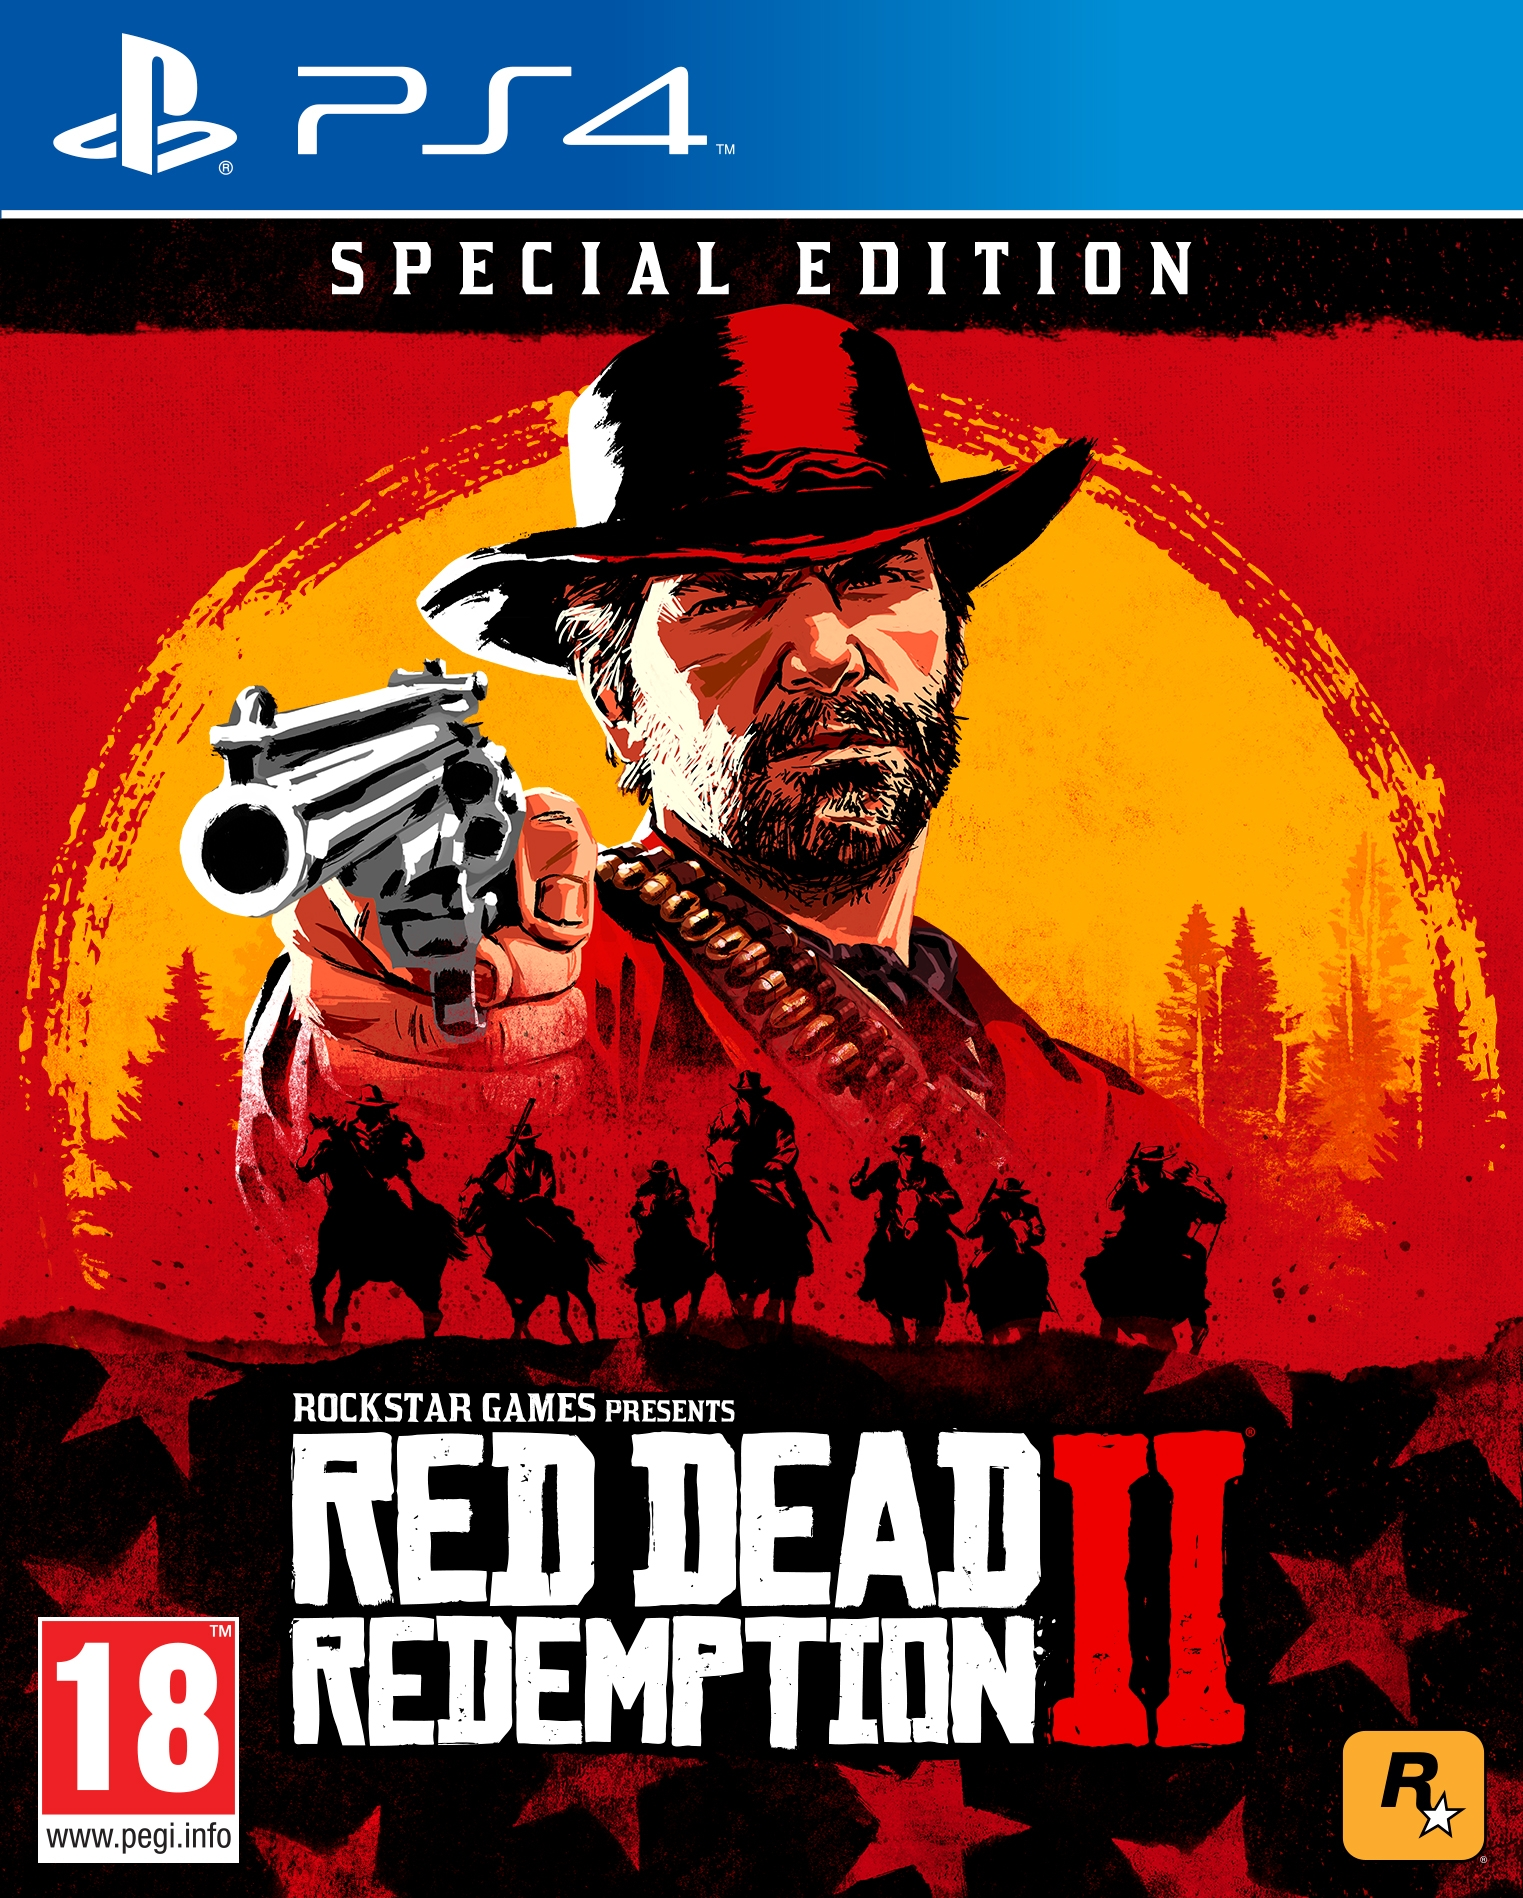 PS4 Red Dead Redemption 2 Special Edition